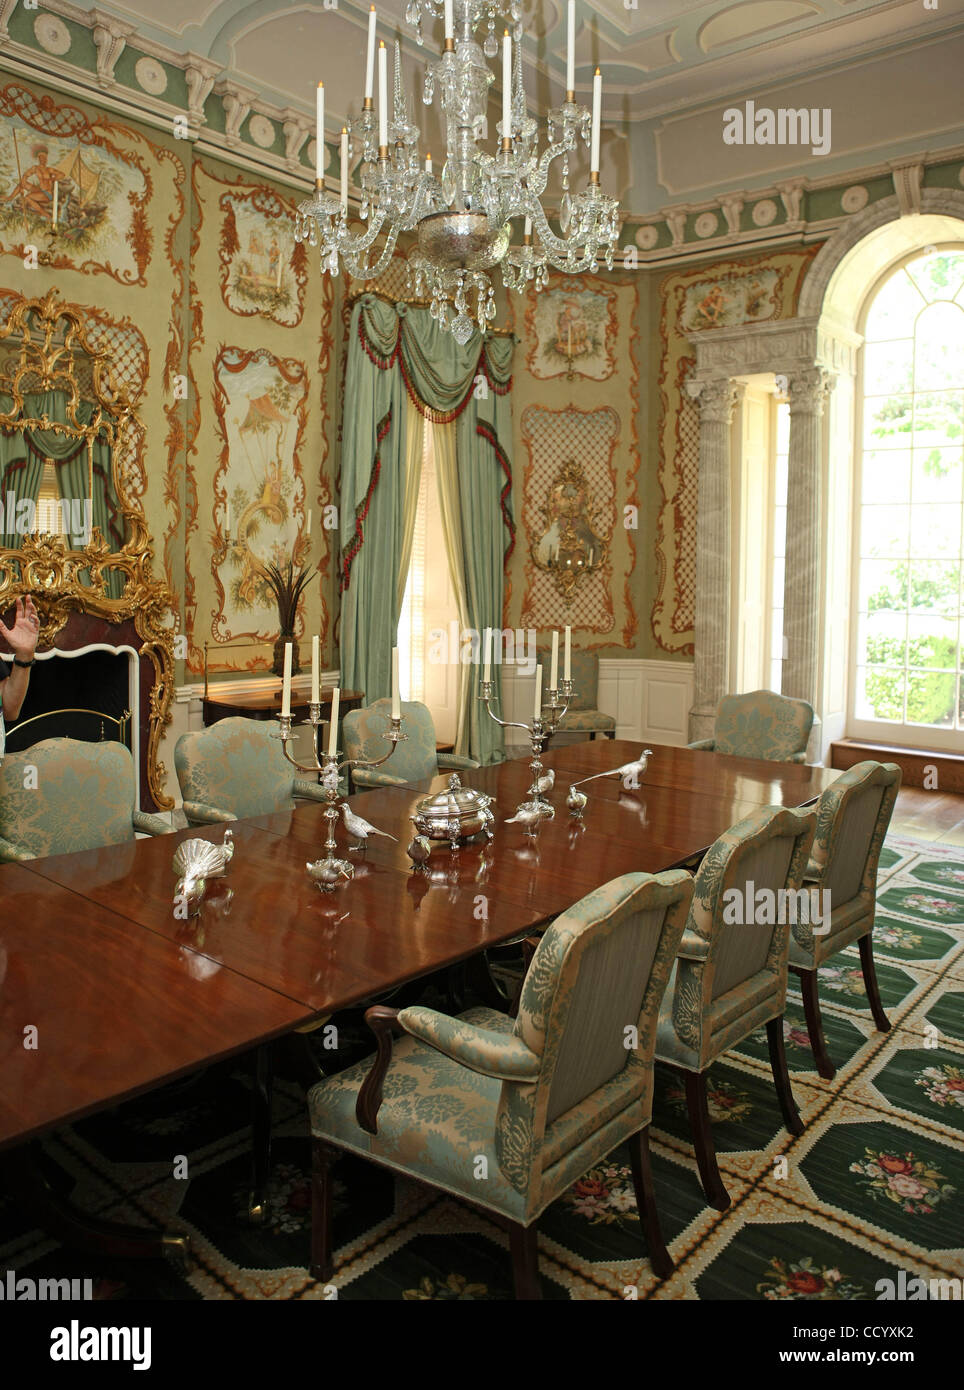 Dining Room Inside Albemarle Estate, A 45 Room Manse On 330 Acres In The  Rolling Hills Of Charlottesville, Va.